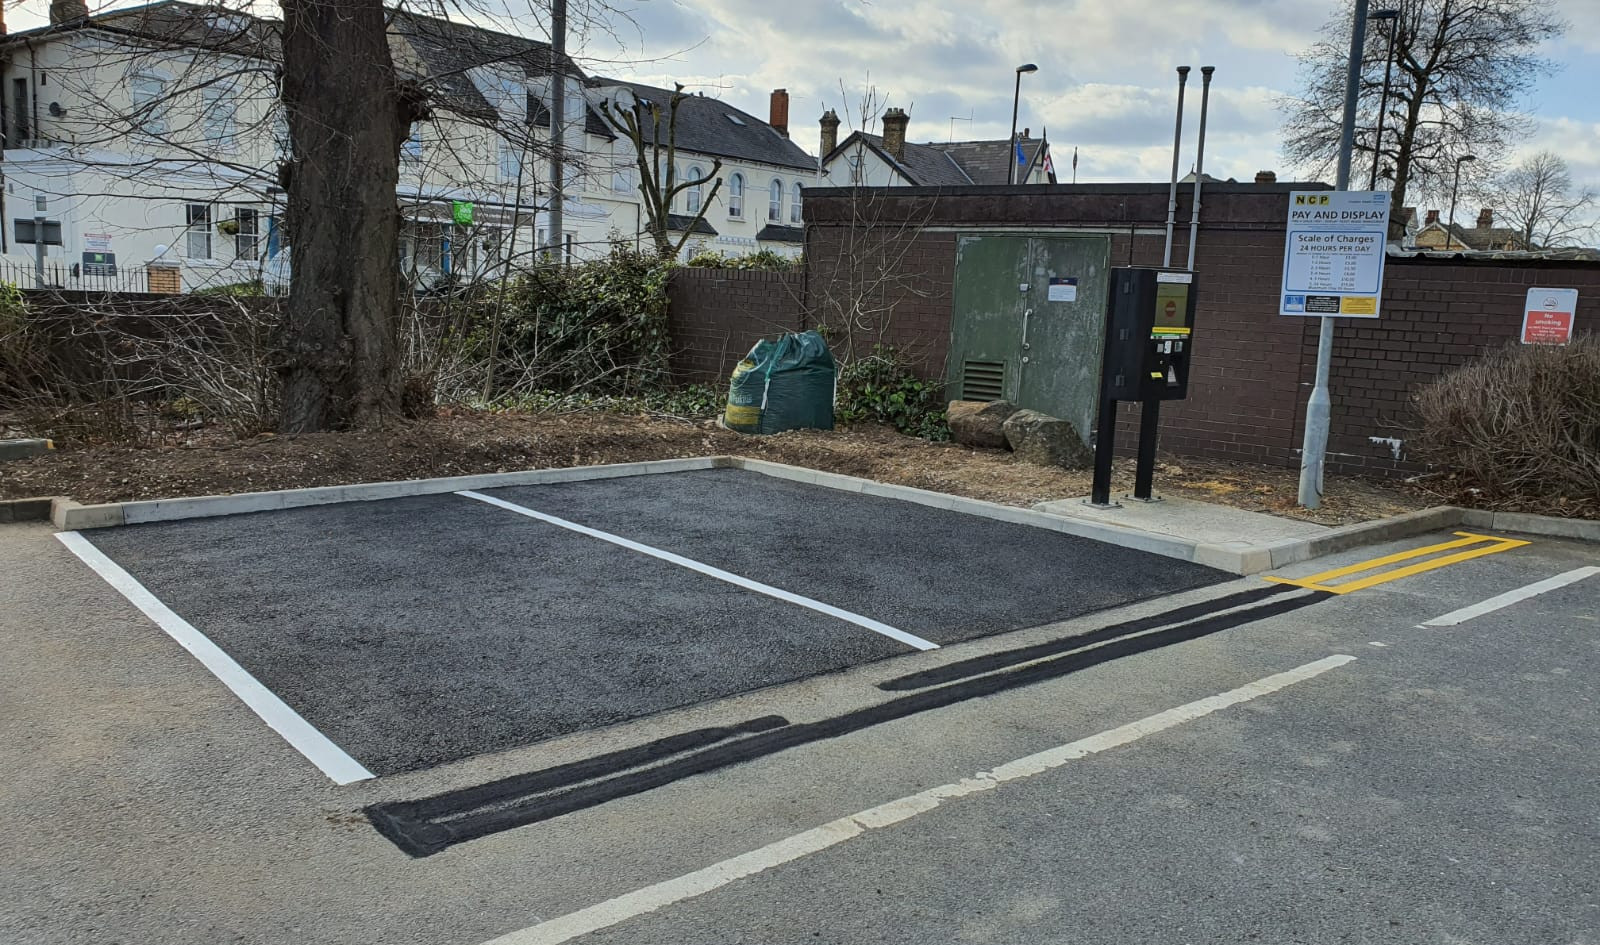 Additional parking bays. Car Park Extension, Croydon